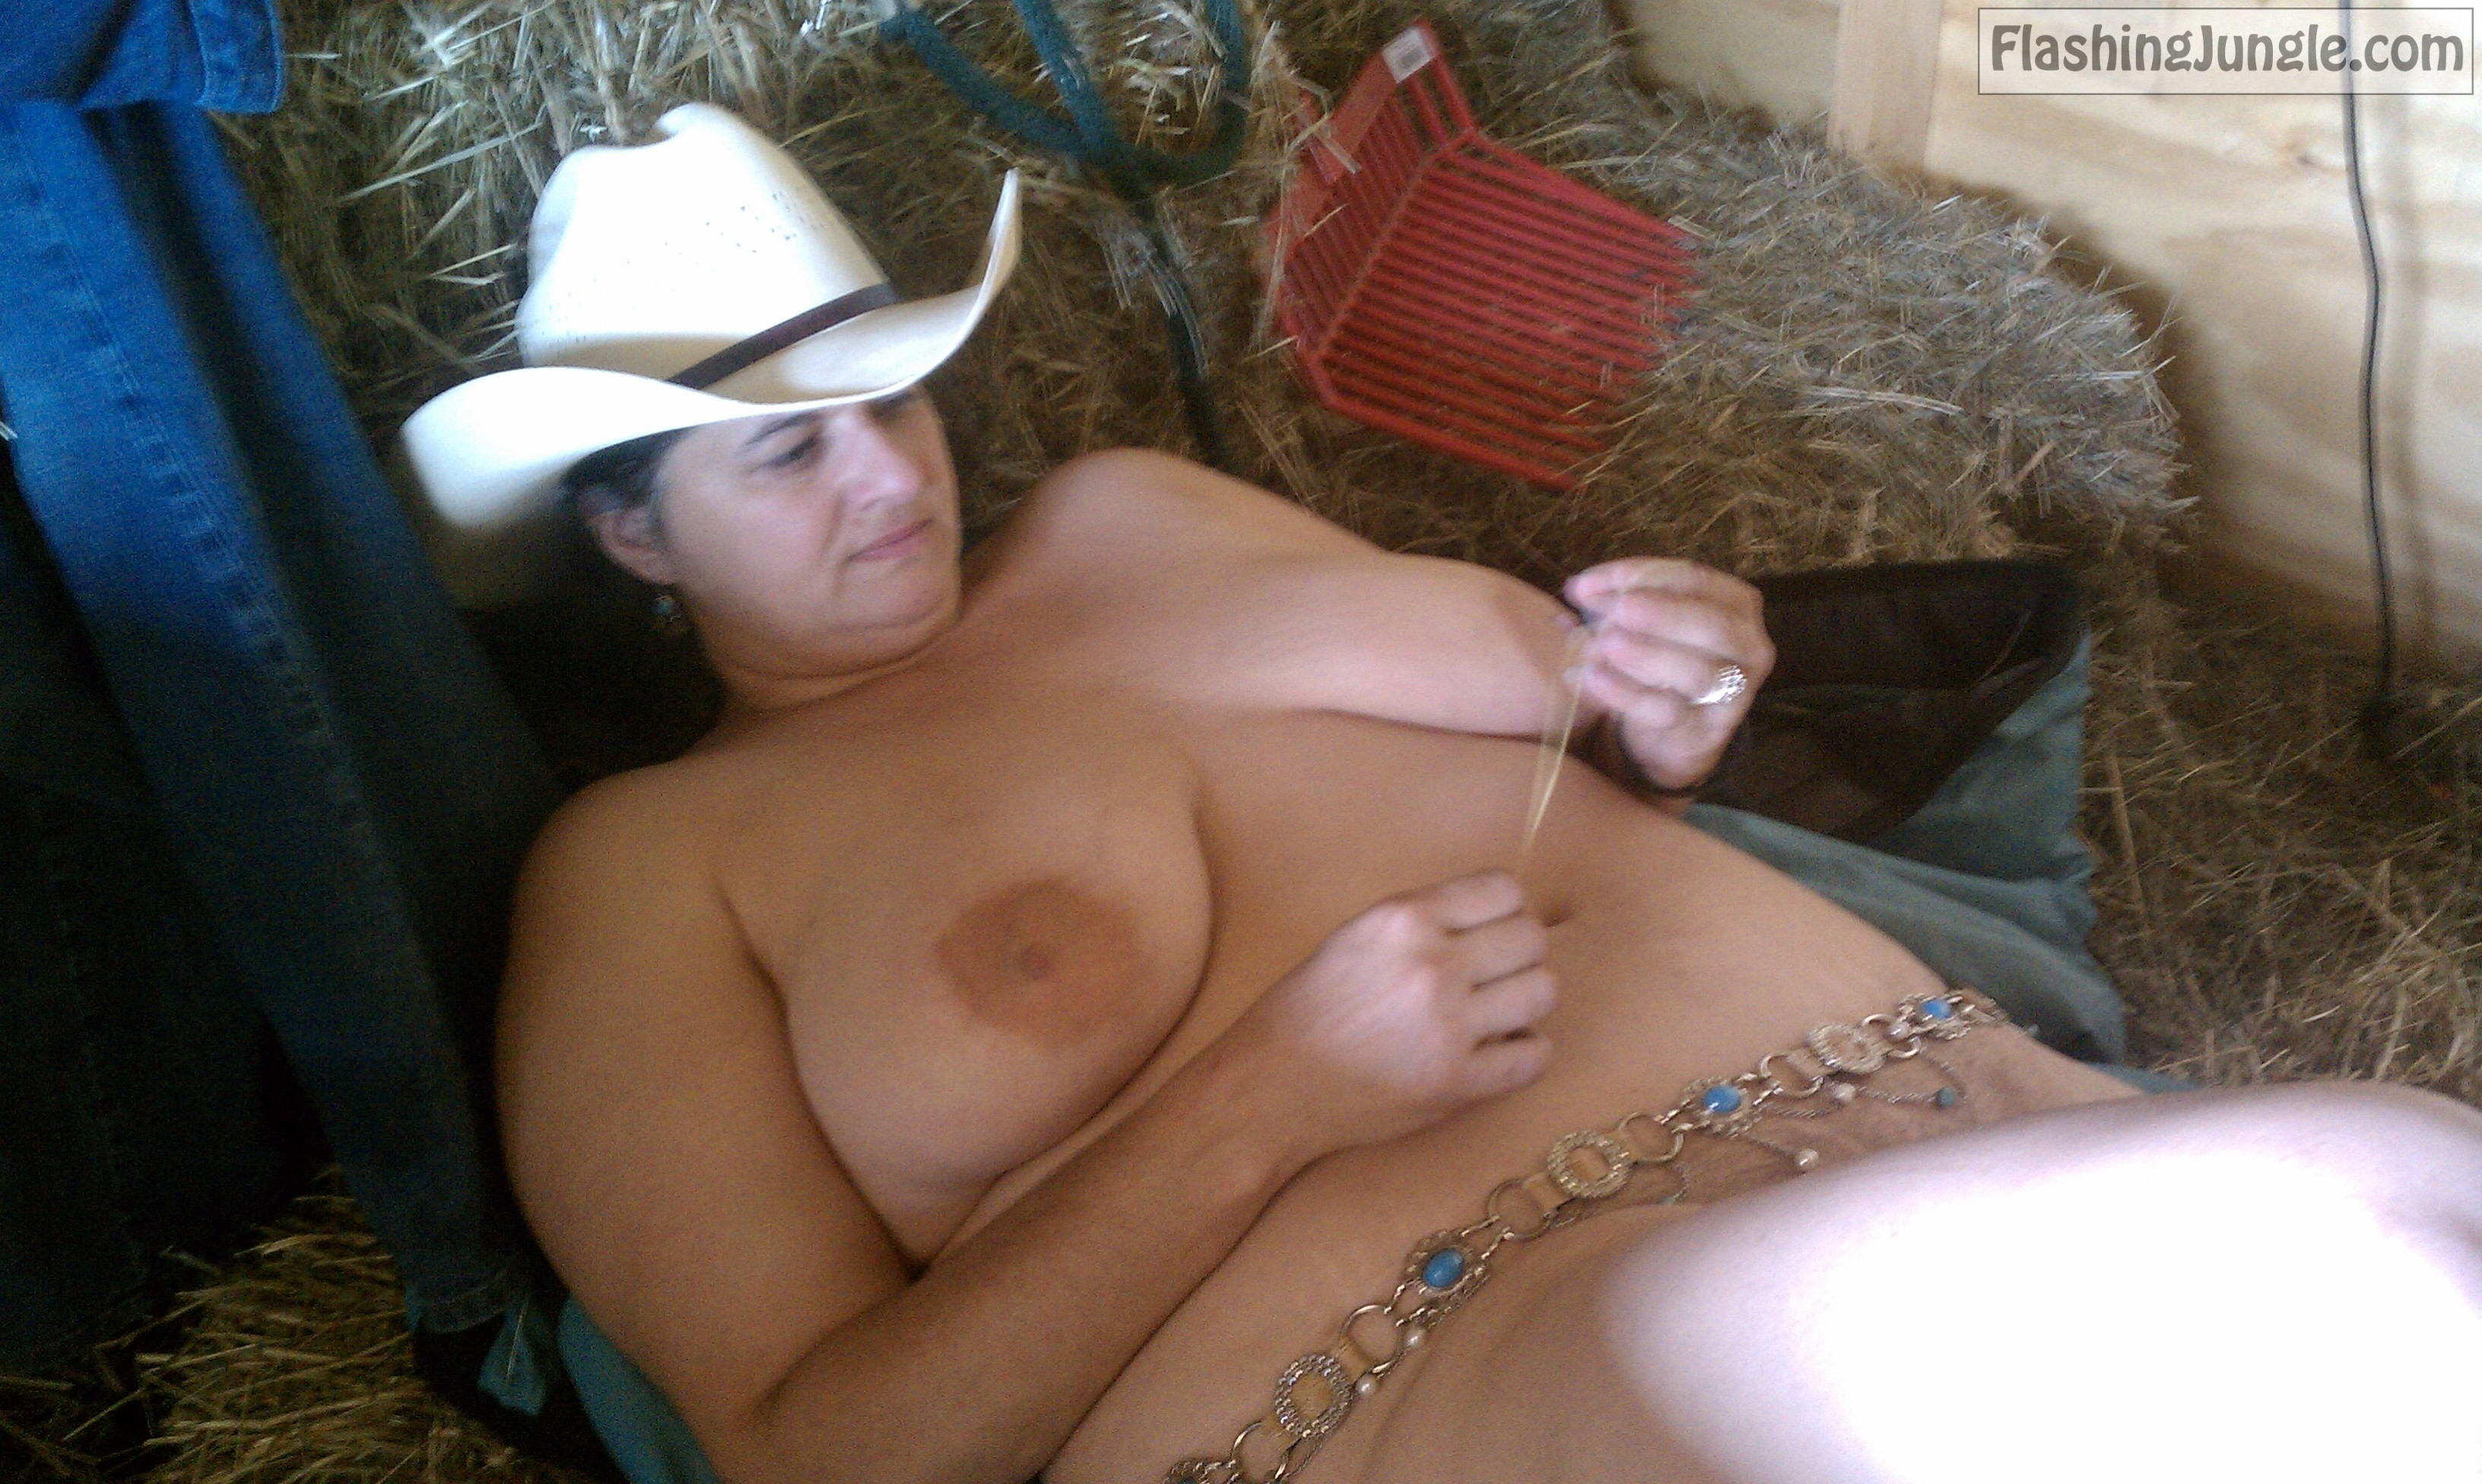 Down on the ranch with slut wife Terry Webb sex stories real nudity public  nudity milf